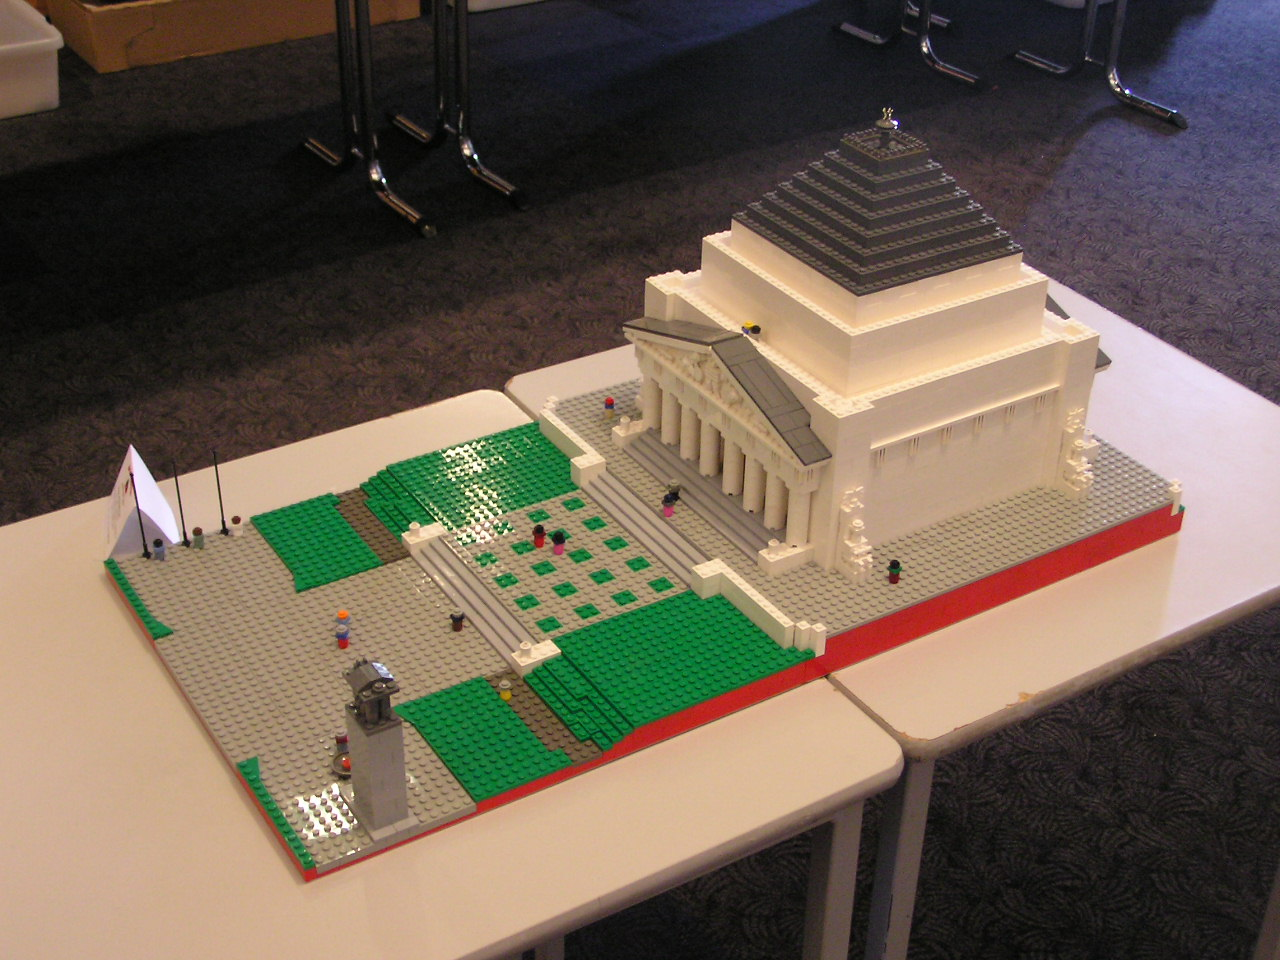 brickvention_088.jpg